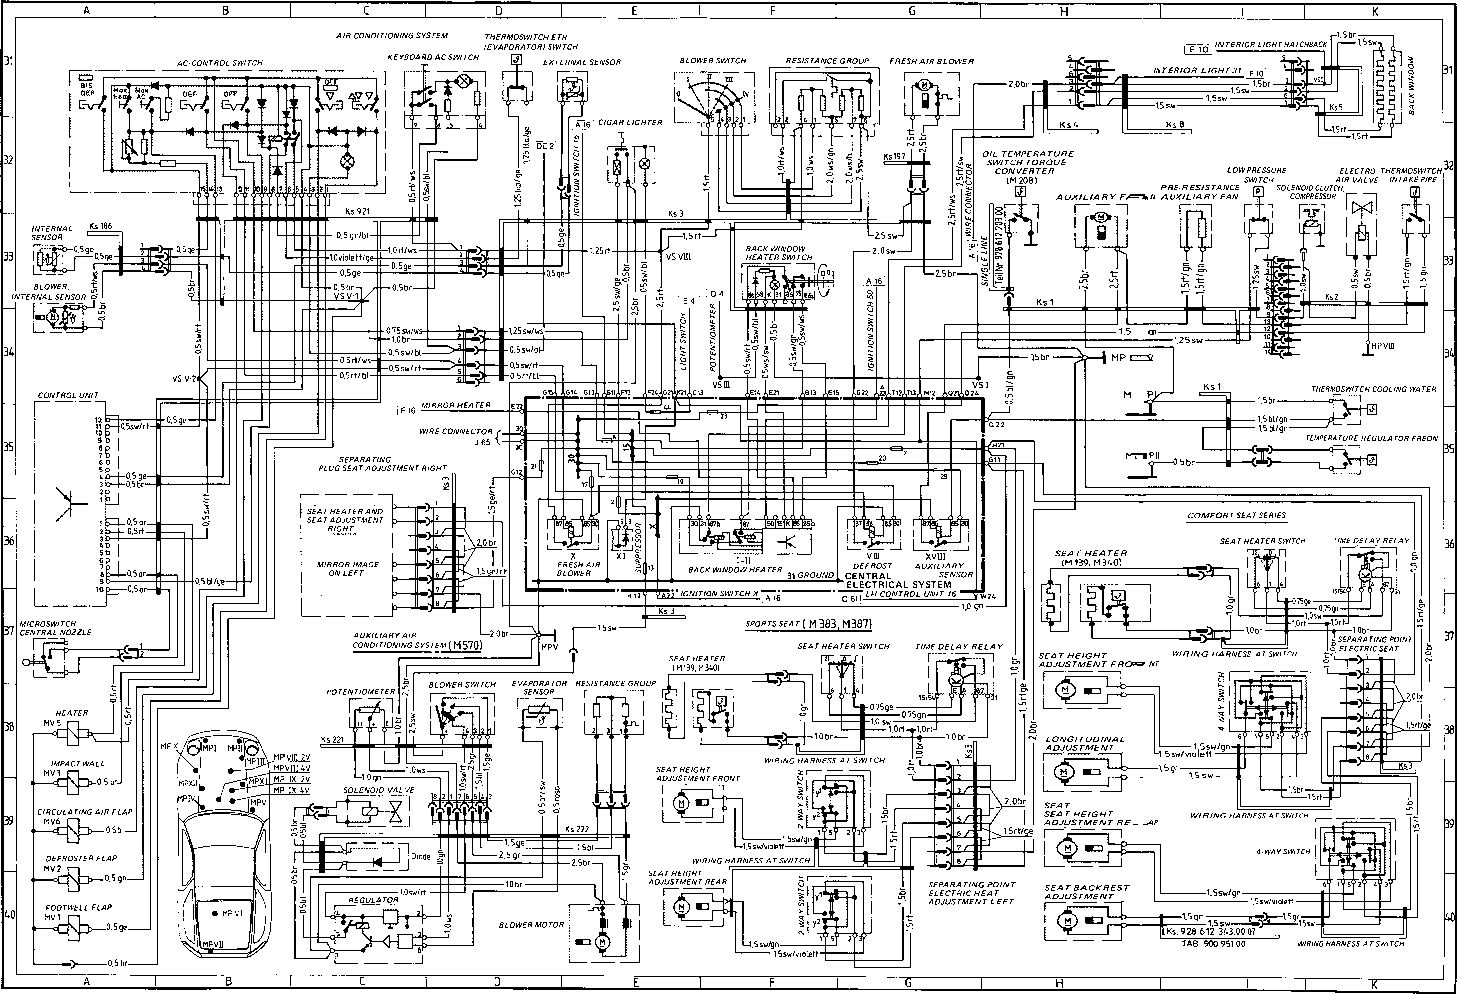 Wiring Diagrams For 86 Porsche 944 - Data Wiring Diagram Today on nissan wiring diagram, morris minor wiring diagram, chrysler dodge wiring diagram, subaru wiring diagram, willys wiring diagram, kenworth wiring diagram, avanti wiring diagram, scion xa wiring diagram, grumman llv wiring diagram, pontiac vibe wiring diagram, merkur wiring diagram, gmc truck wiring diagram, saturn vue wiring diagram, jeep wiring diagram, hummer wiring diagram, mg wiring diagram, ghia wiring diagram, suzuki xl7 wiring diagram,